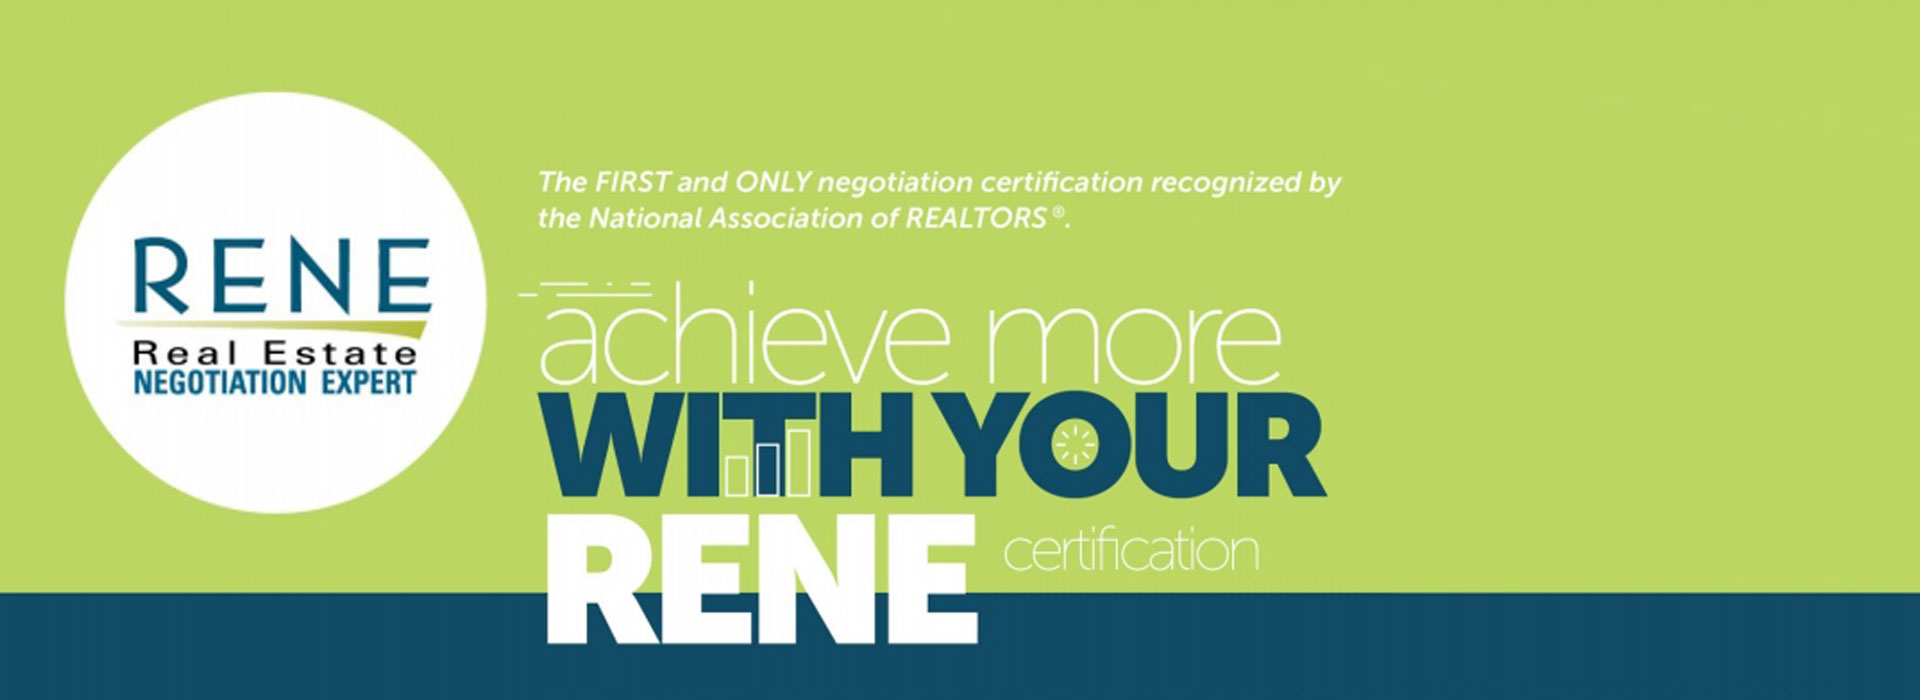 Become a RE Negotiation Expert November 20th-21st